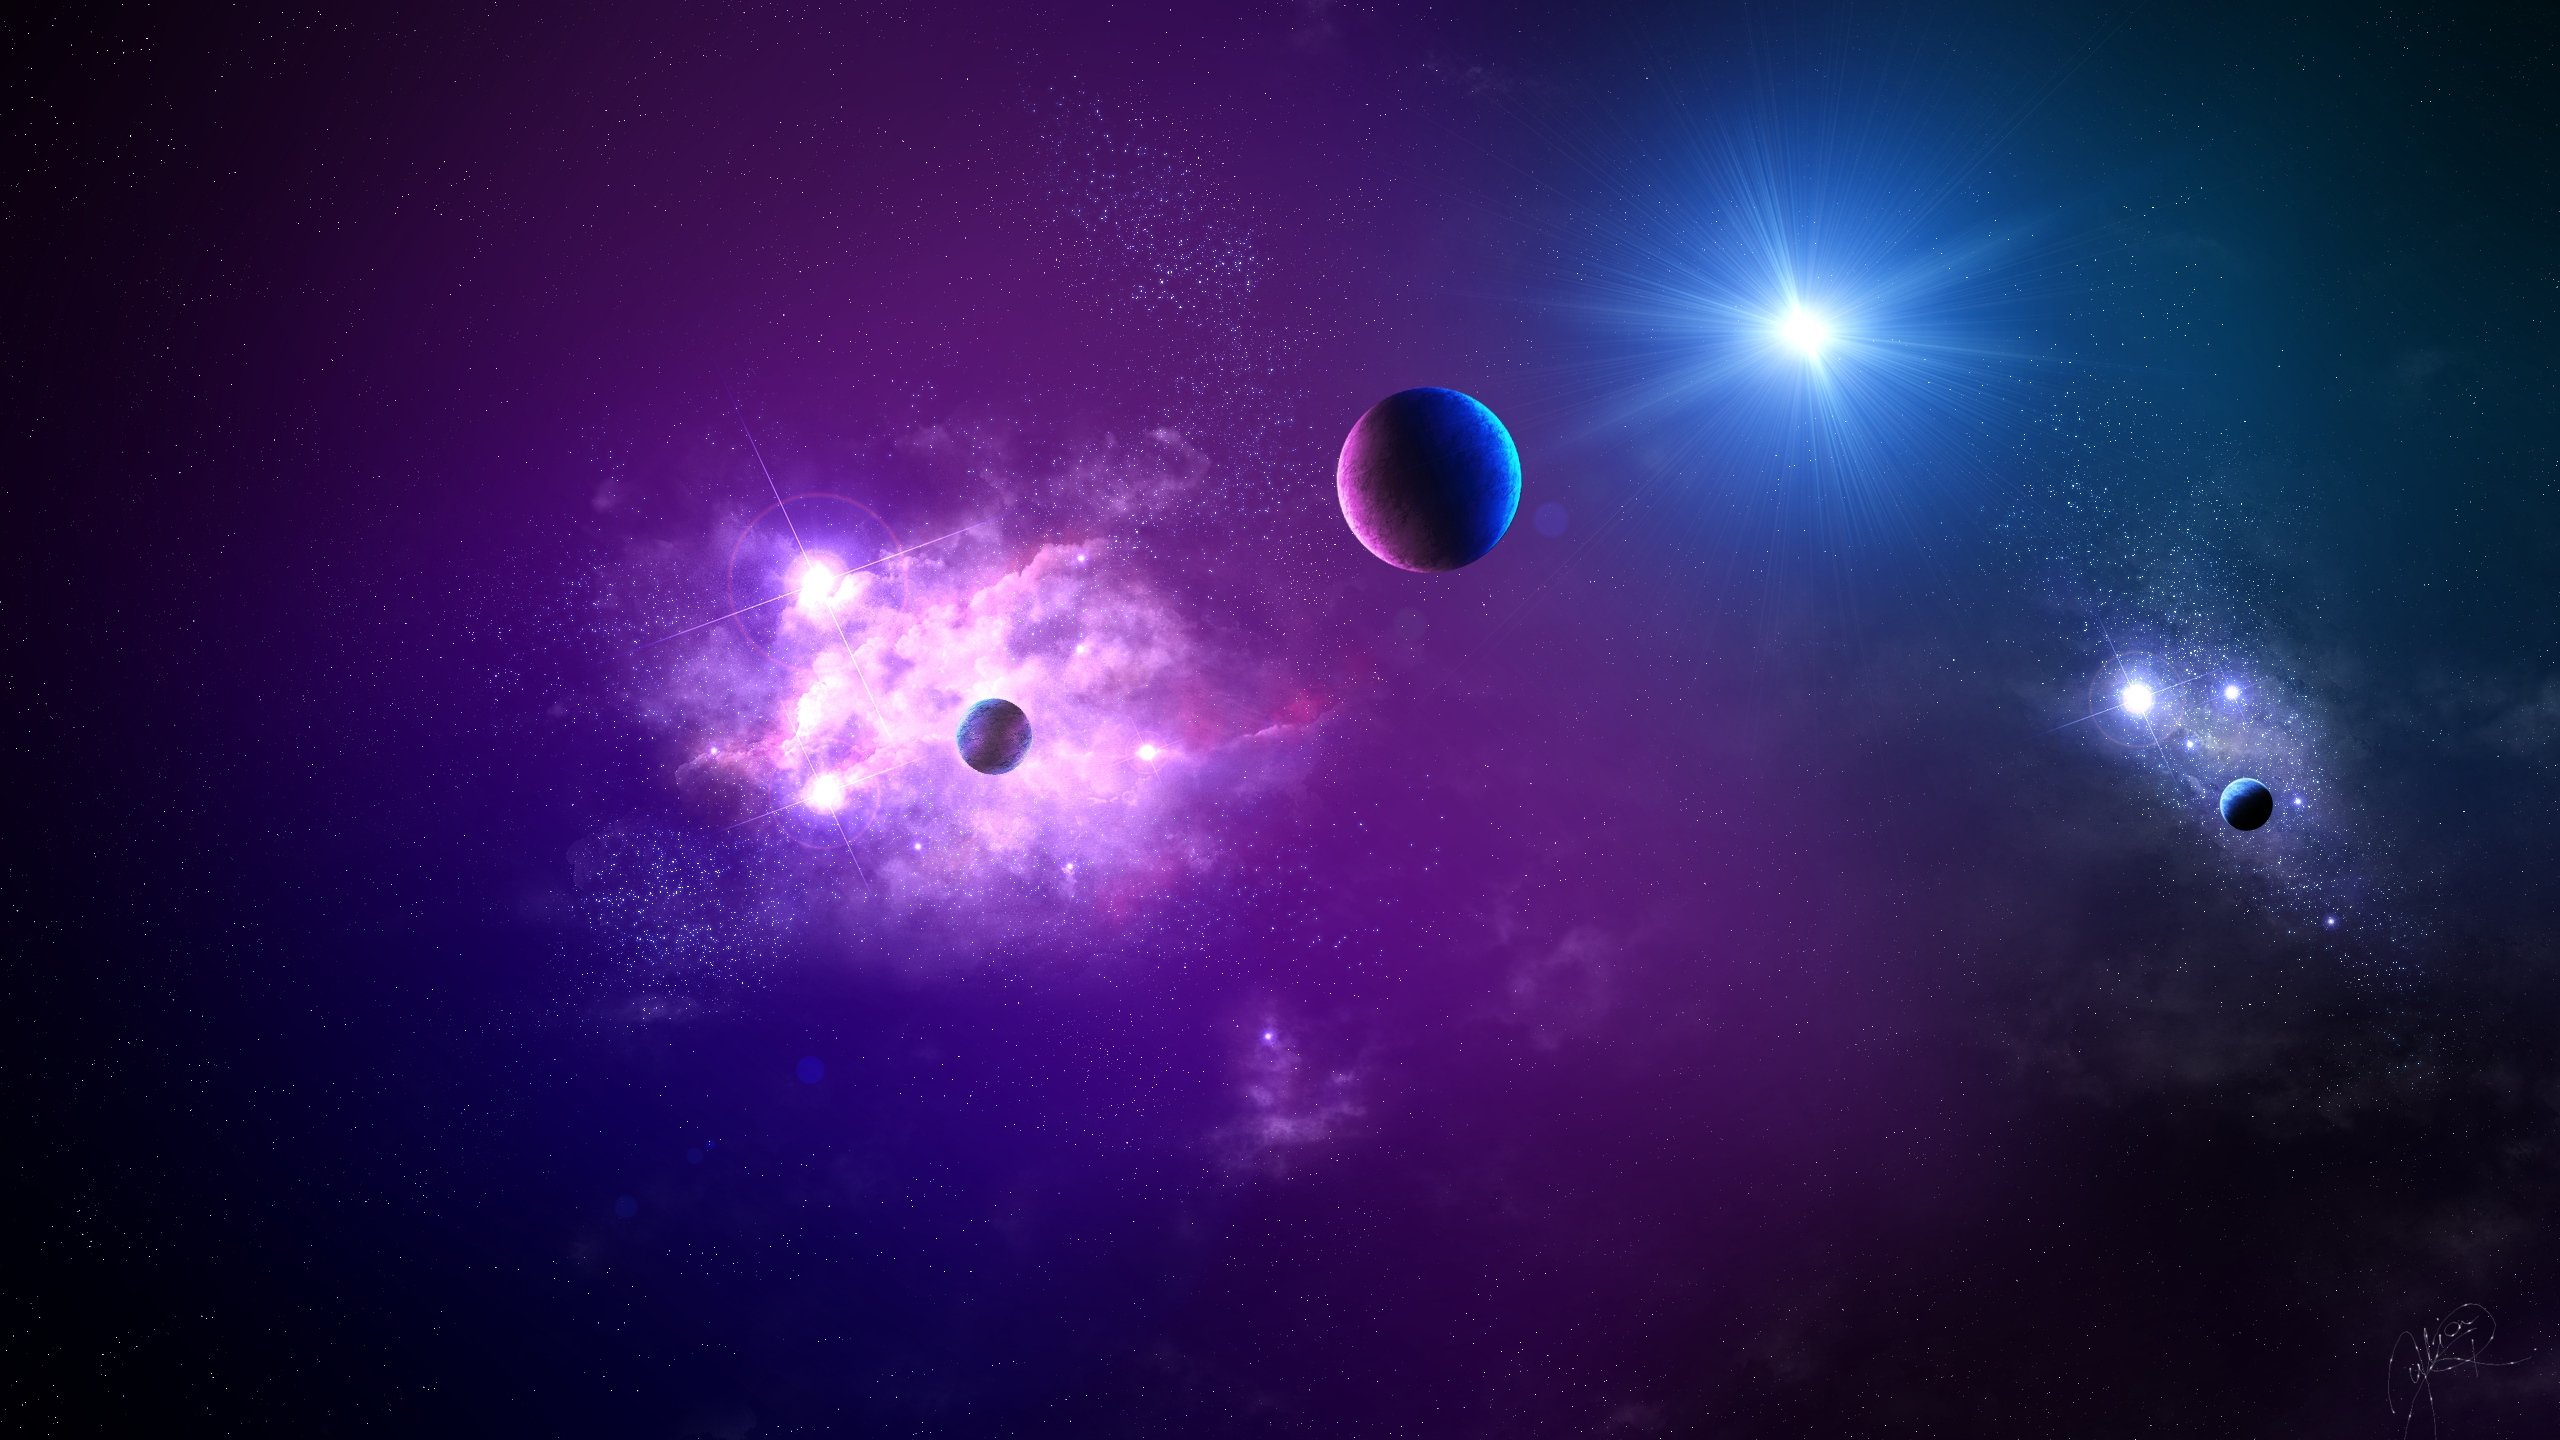 Download Wallpaper 2560x1440 Space Planet Light Galaxy Mac iMac 27 2560x1440